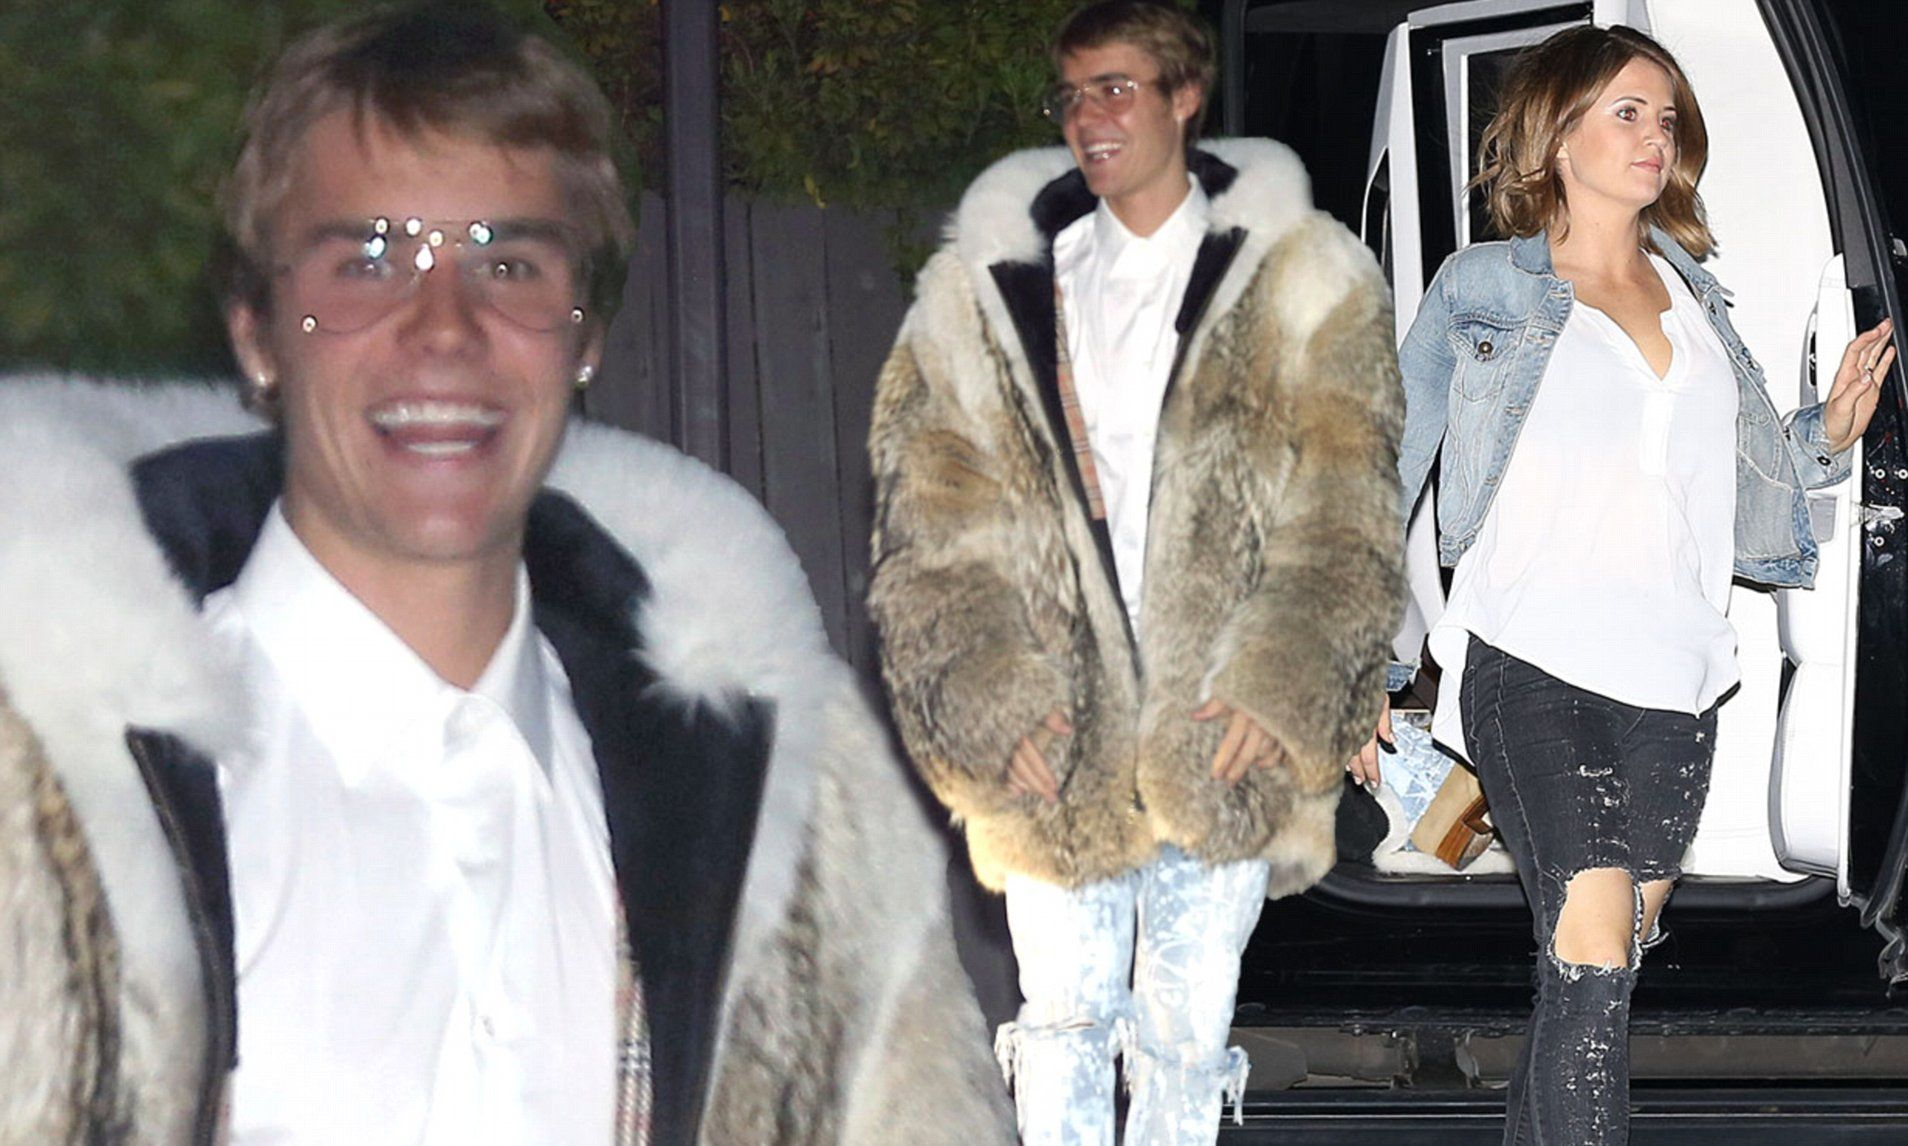 Making his way into a local diner, Bieber inevitably turned heads courtesy of his extravagant choice of attire.